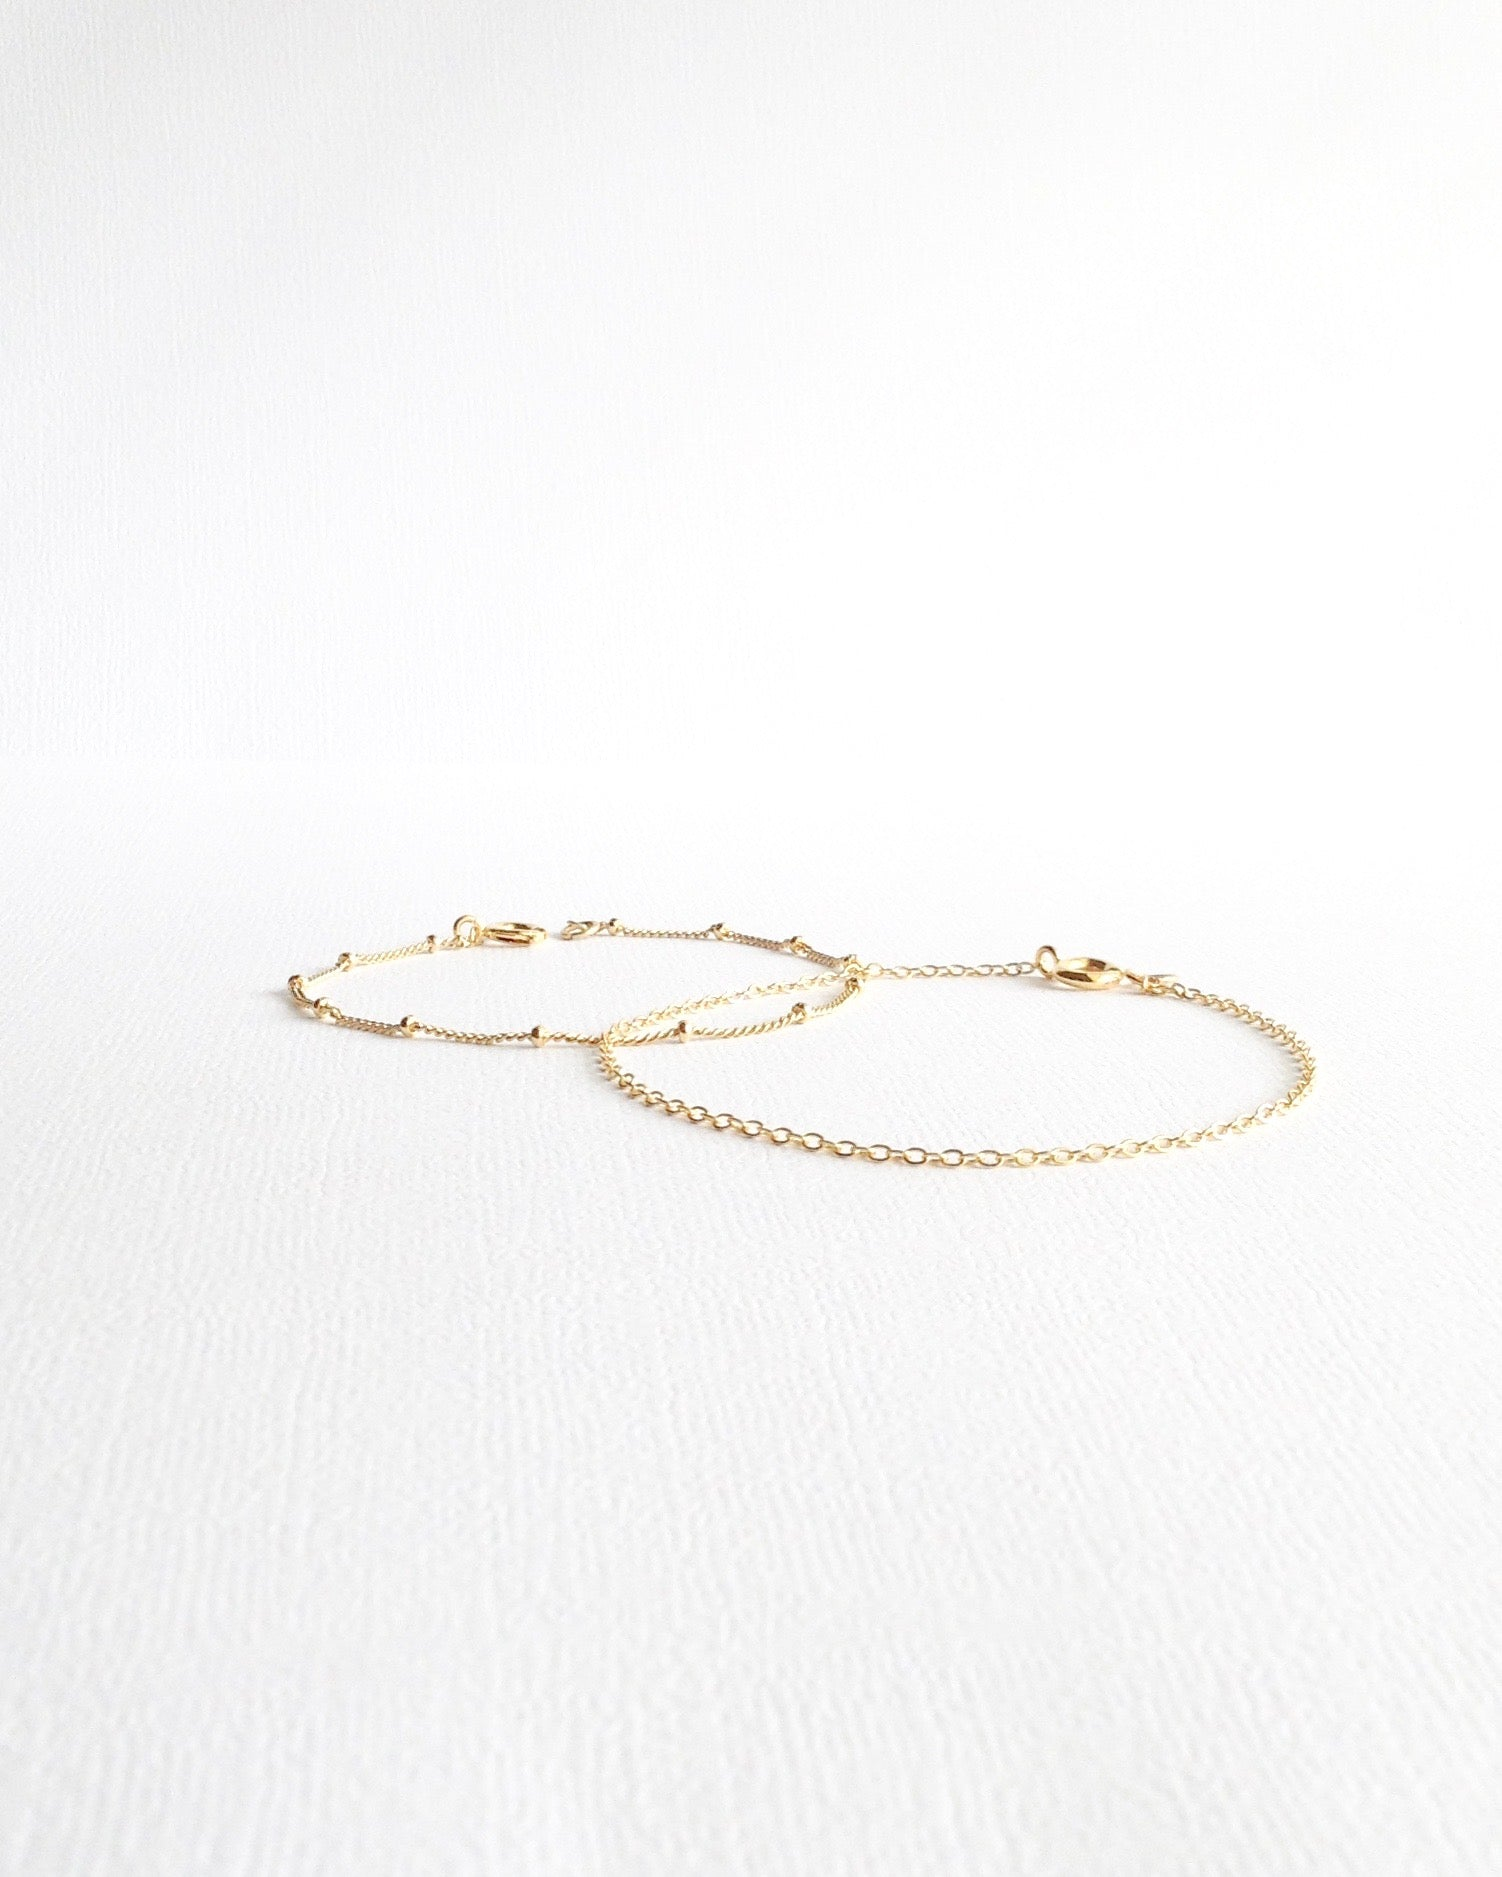 Dainty Everyday Bracelets | Delicate Layered Bracelet Set | IB Jewelry